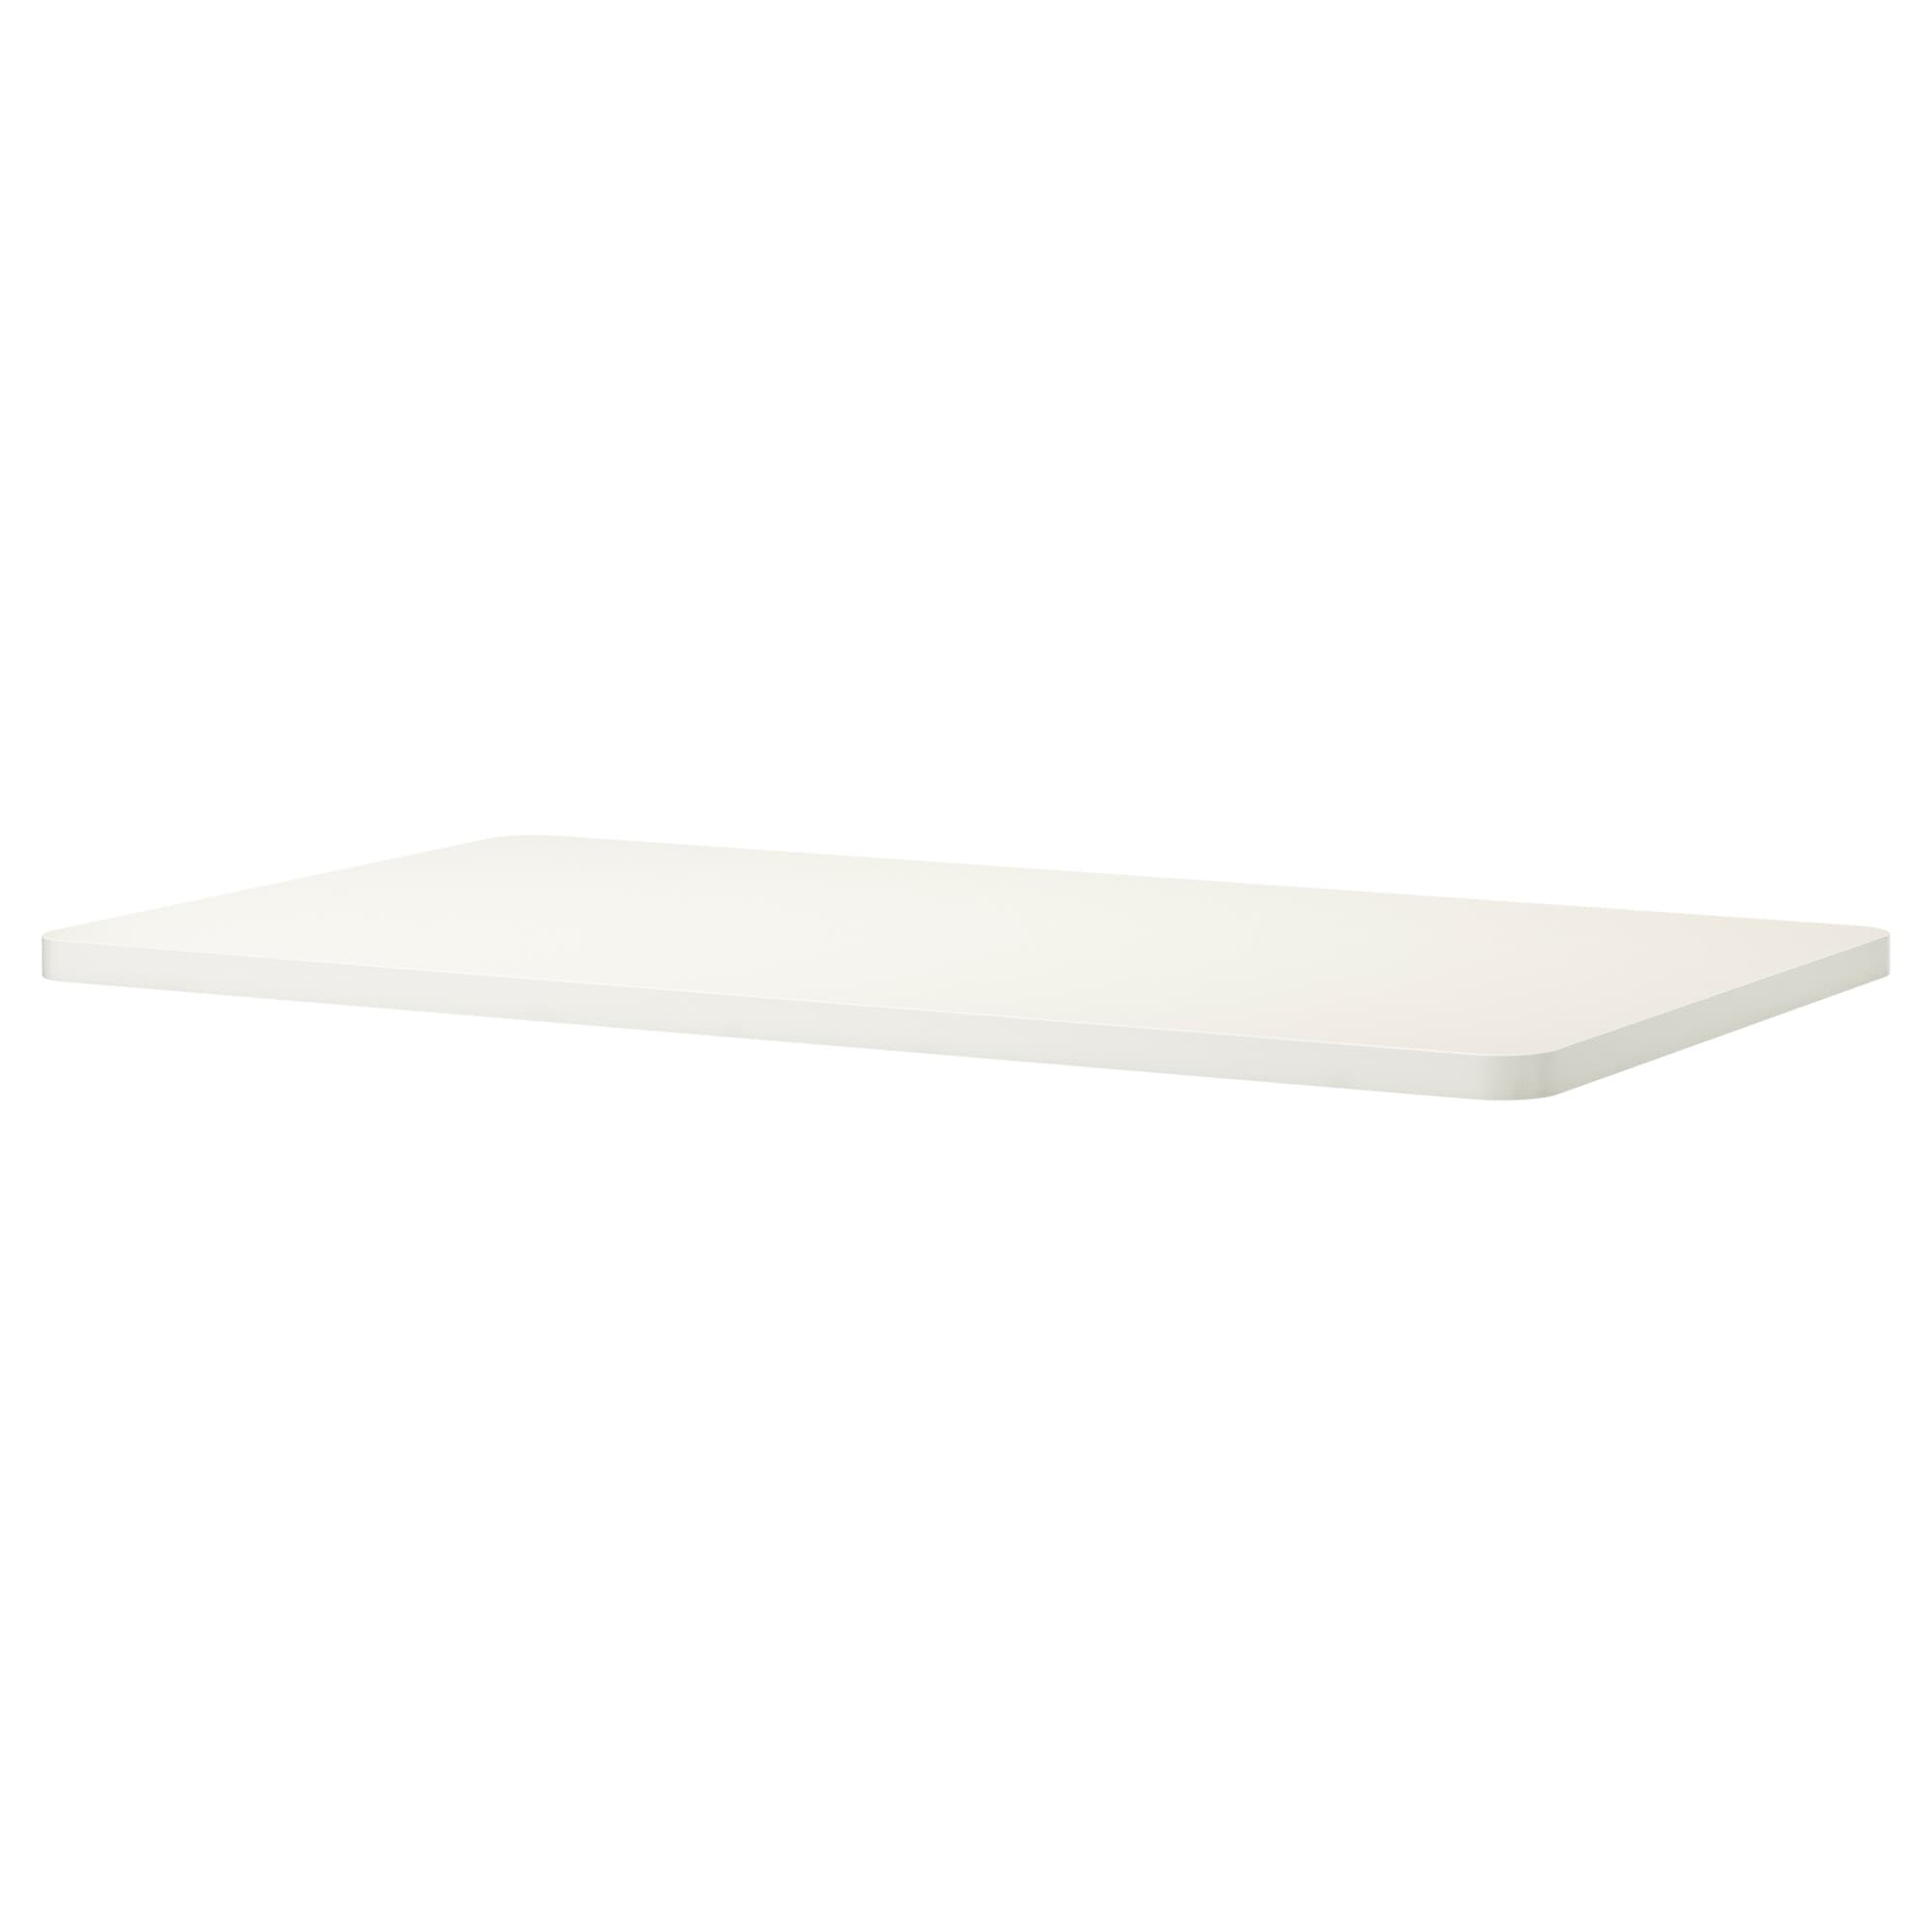 Ikea dining table white - Rydeb Ck Table Top White Length 59 Width 30 3 4